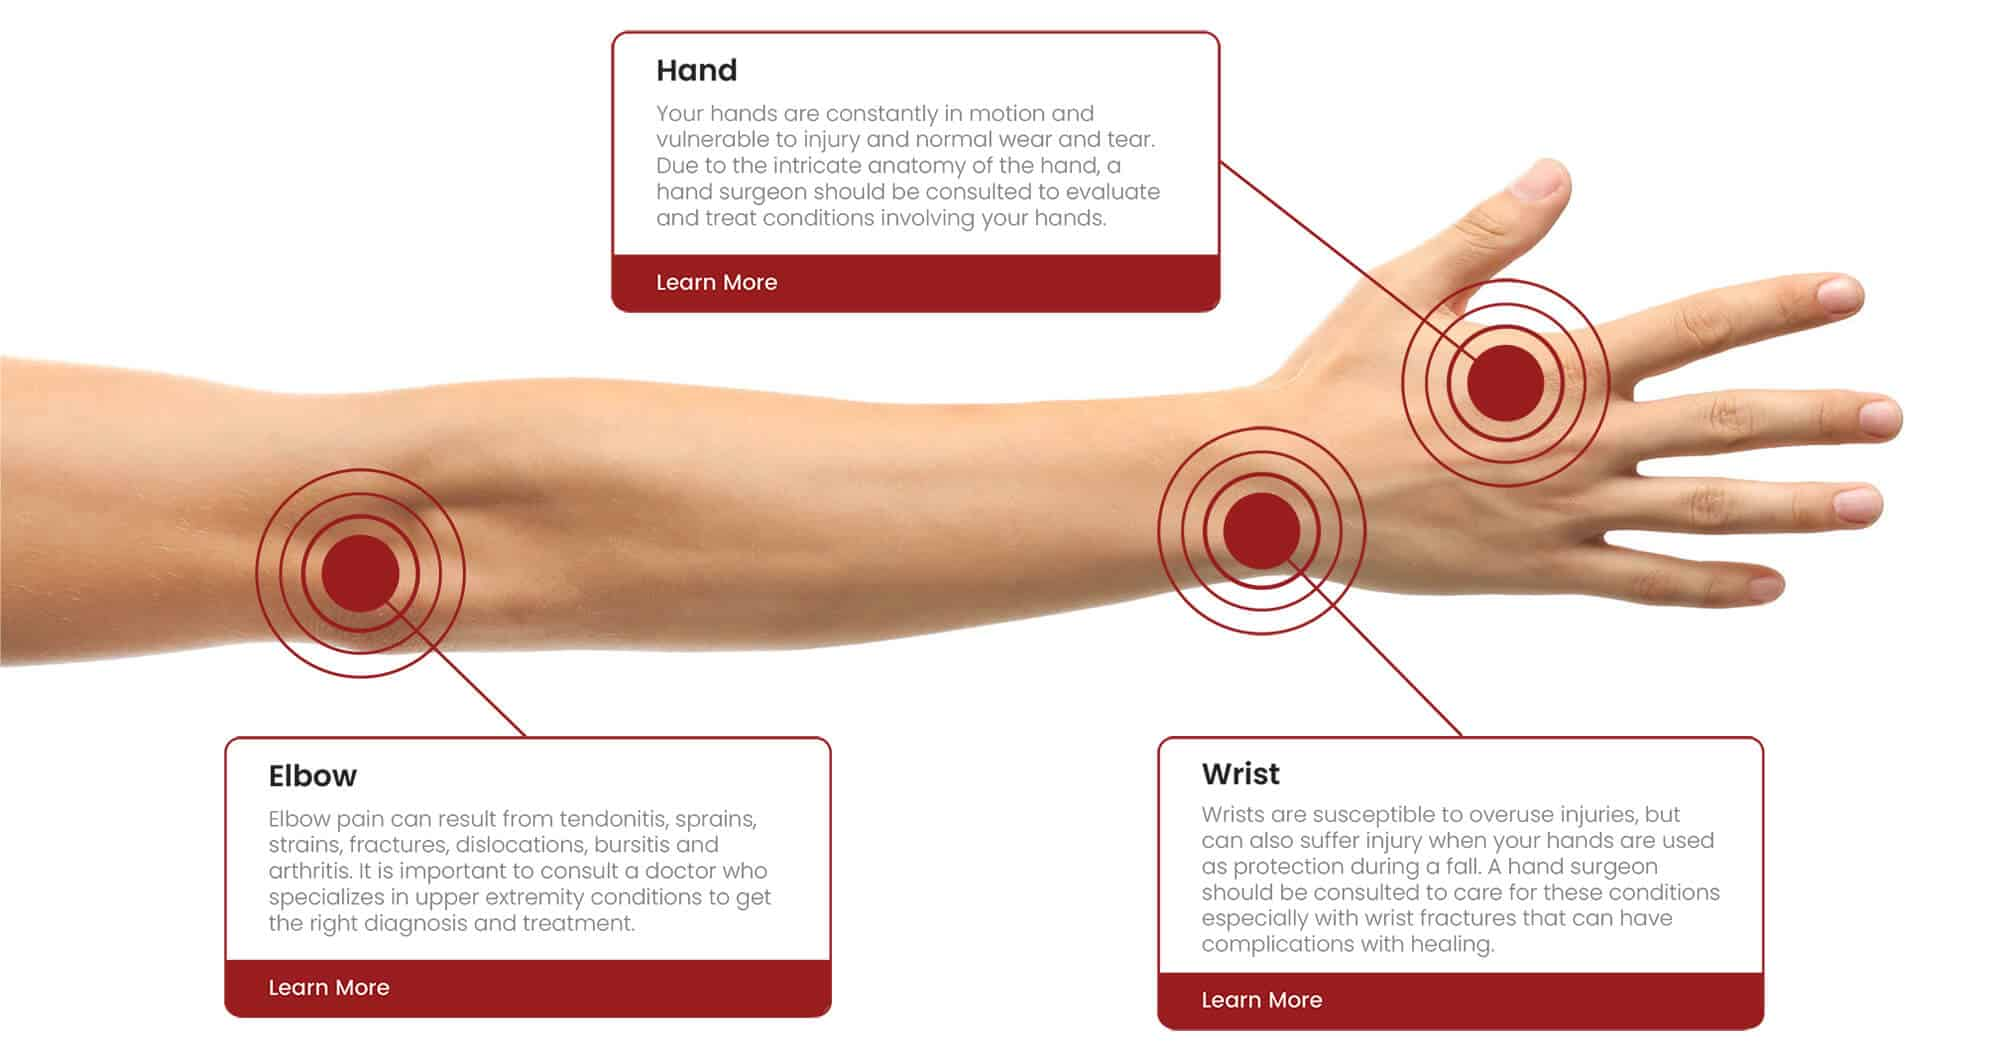 Infographic for the arm showing the hand, wrist, and elbow and how they may be affected by pain or injury